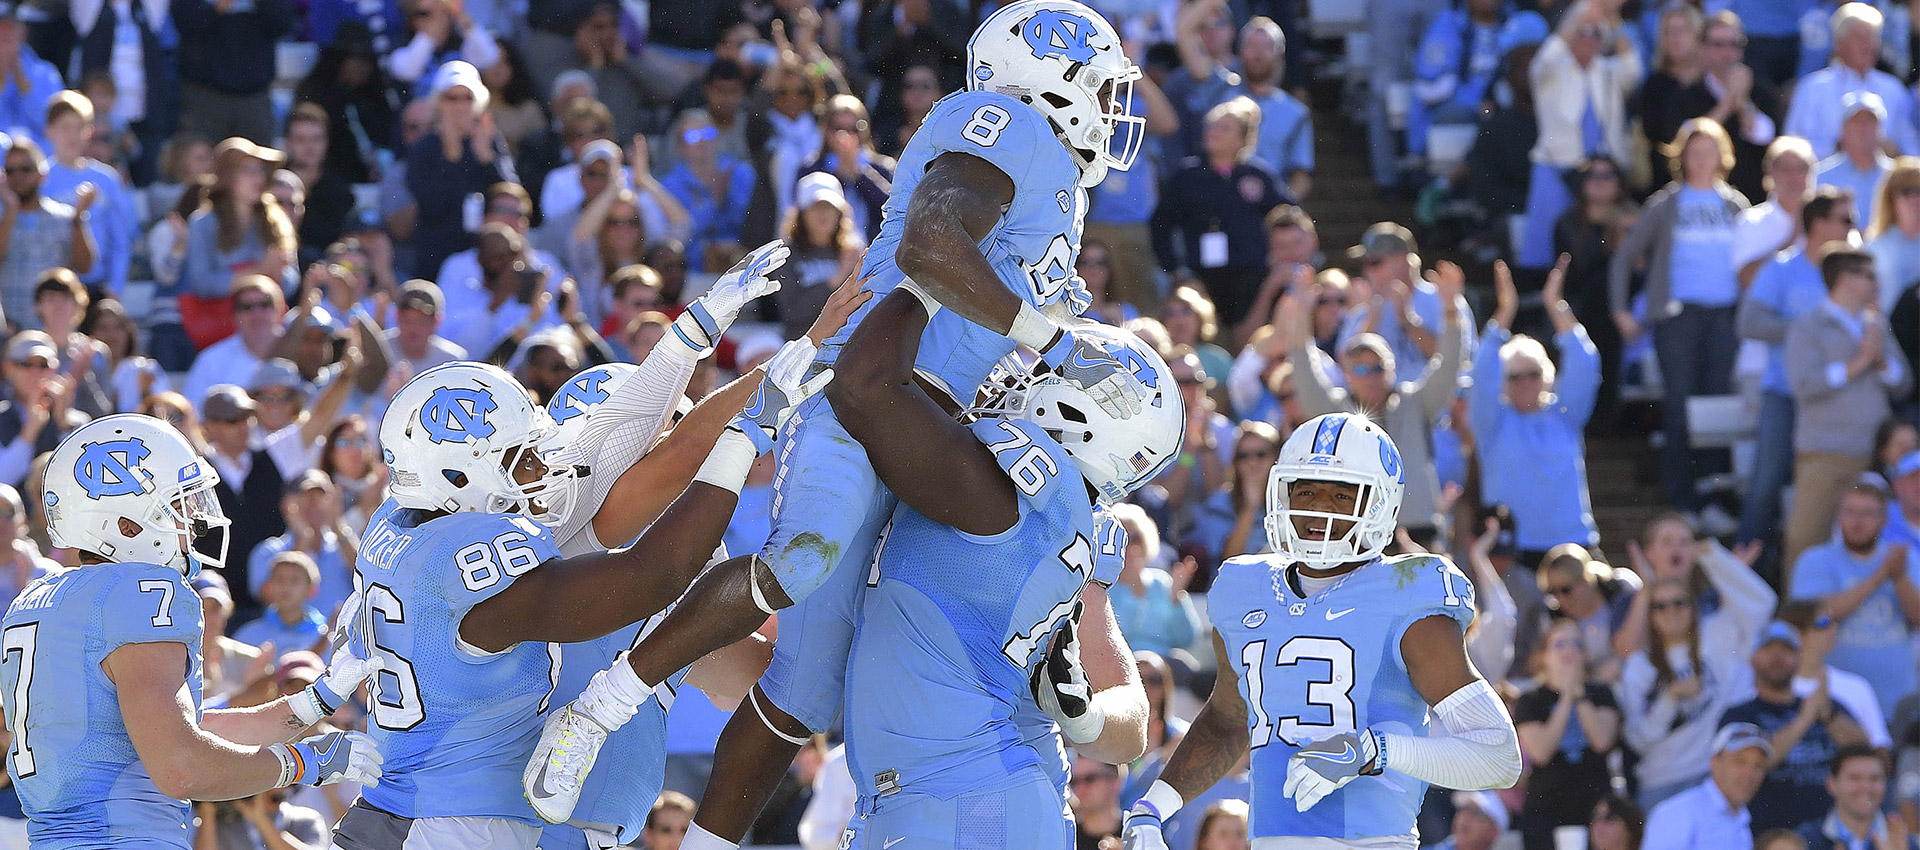 North Carolina Tar Heels 2